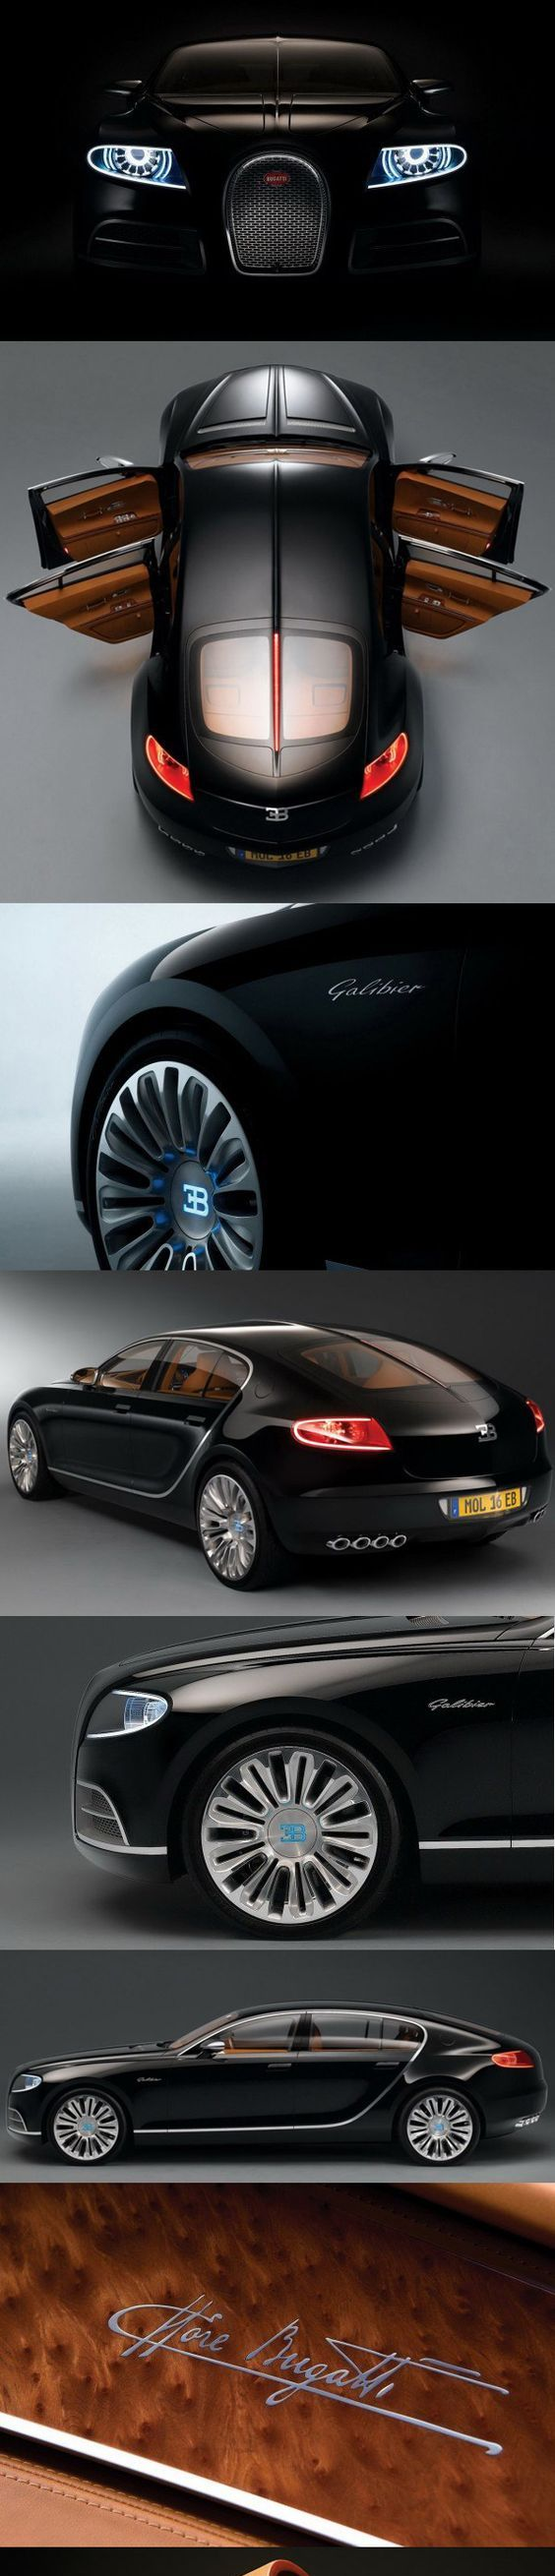 MISTRESS: Black Exterior, Mahogany Interior, Champagne Lining, A Little  Bling Bugatti Galibier   Luxury Car Connection